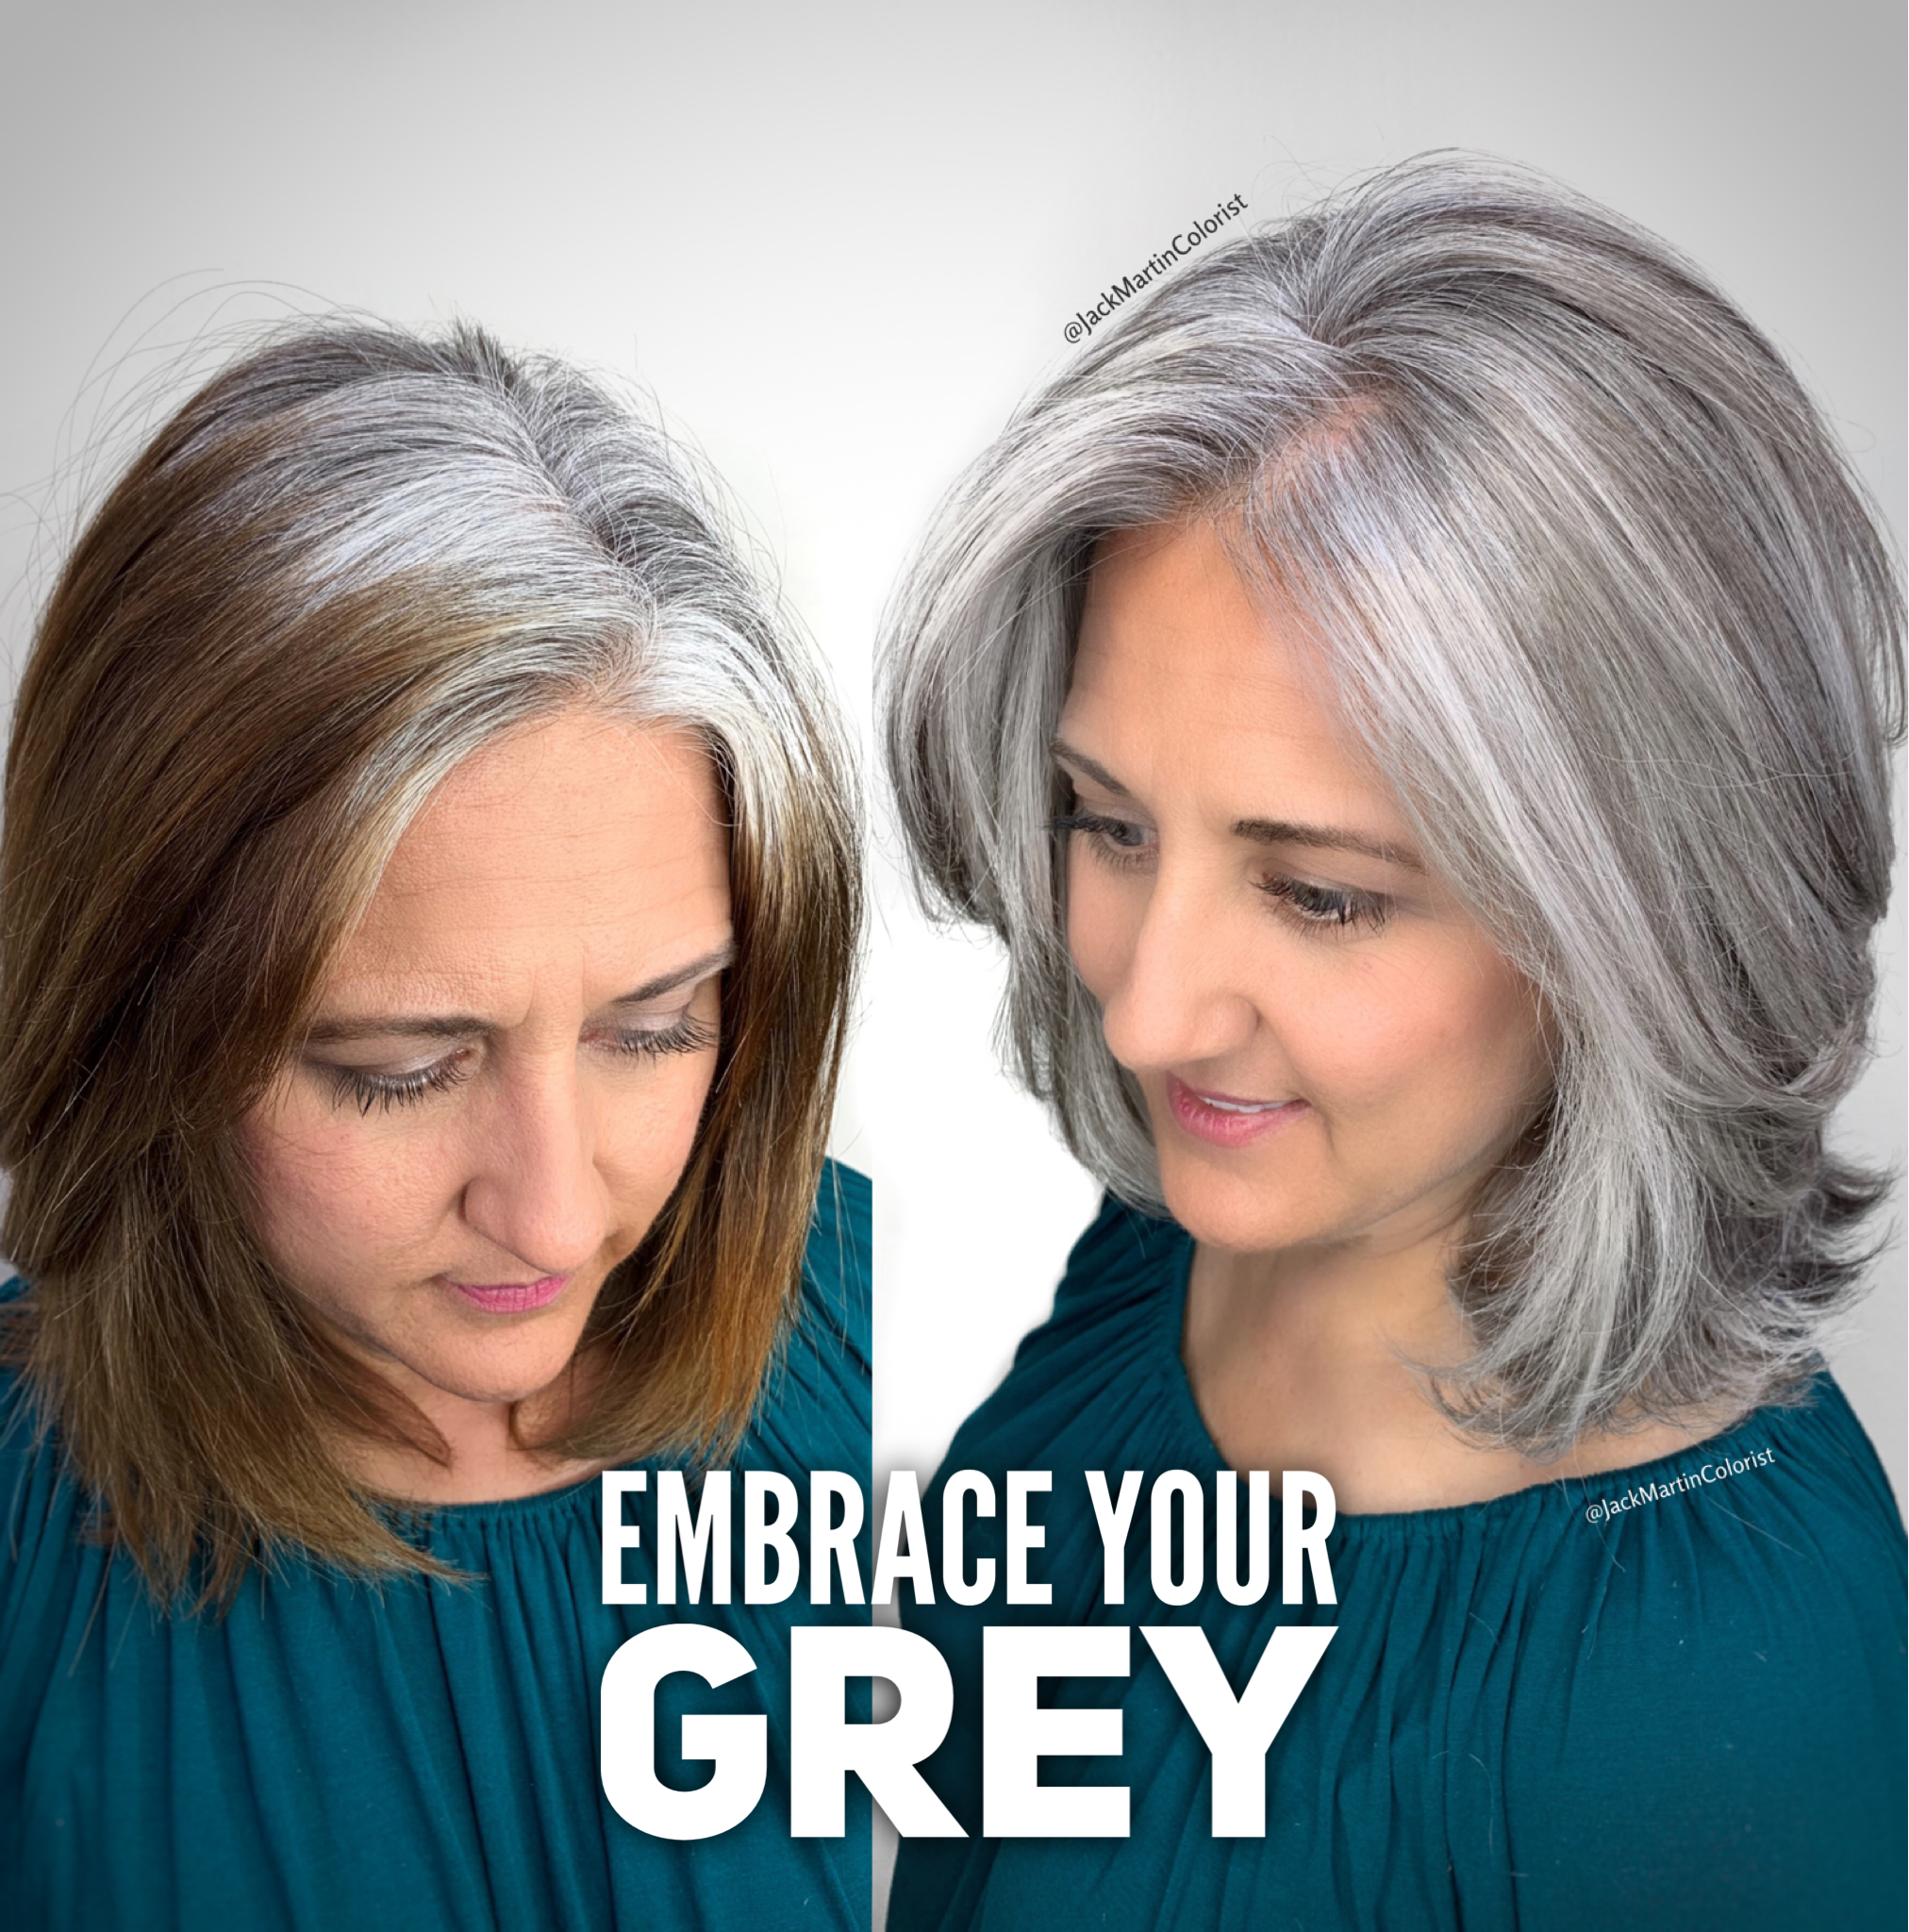 Embrace Your Grey And Stop Coloring Check The Link Below On How I Achieved This Transformation Blending Gray Hair Pretty Gray Hair Grey Hair Styles For Women